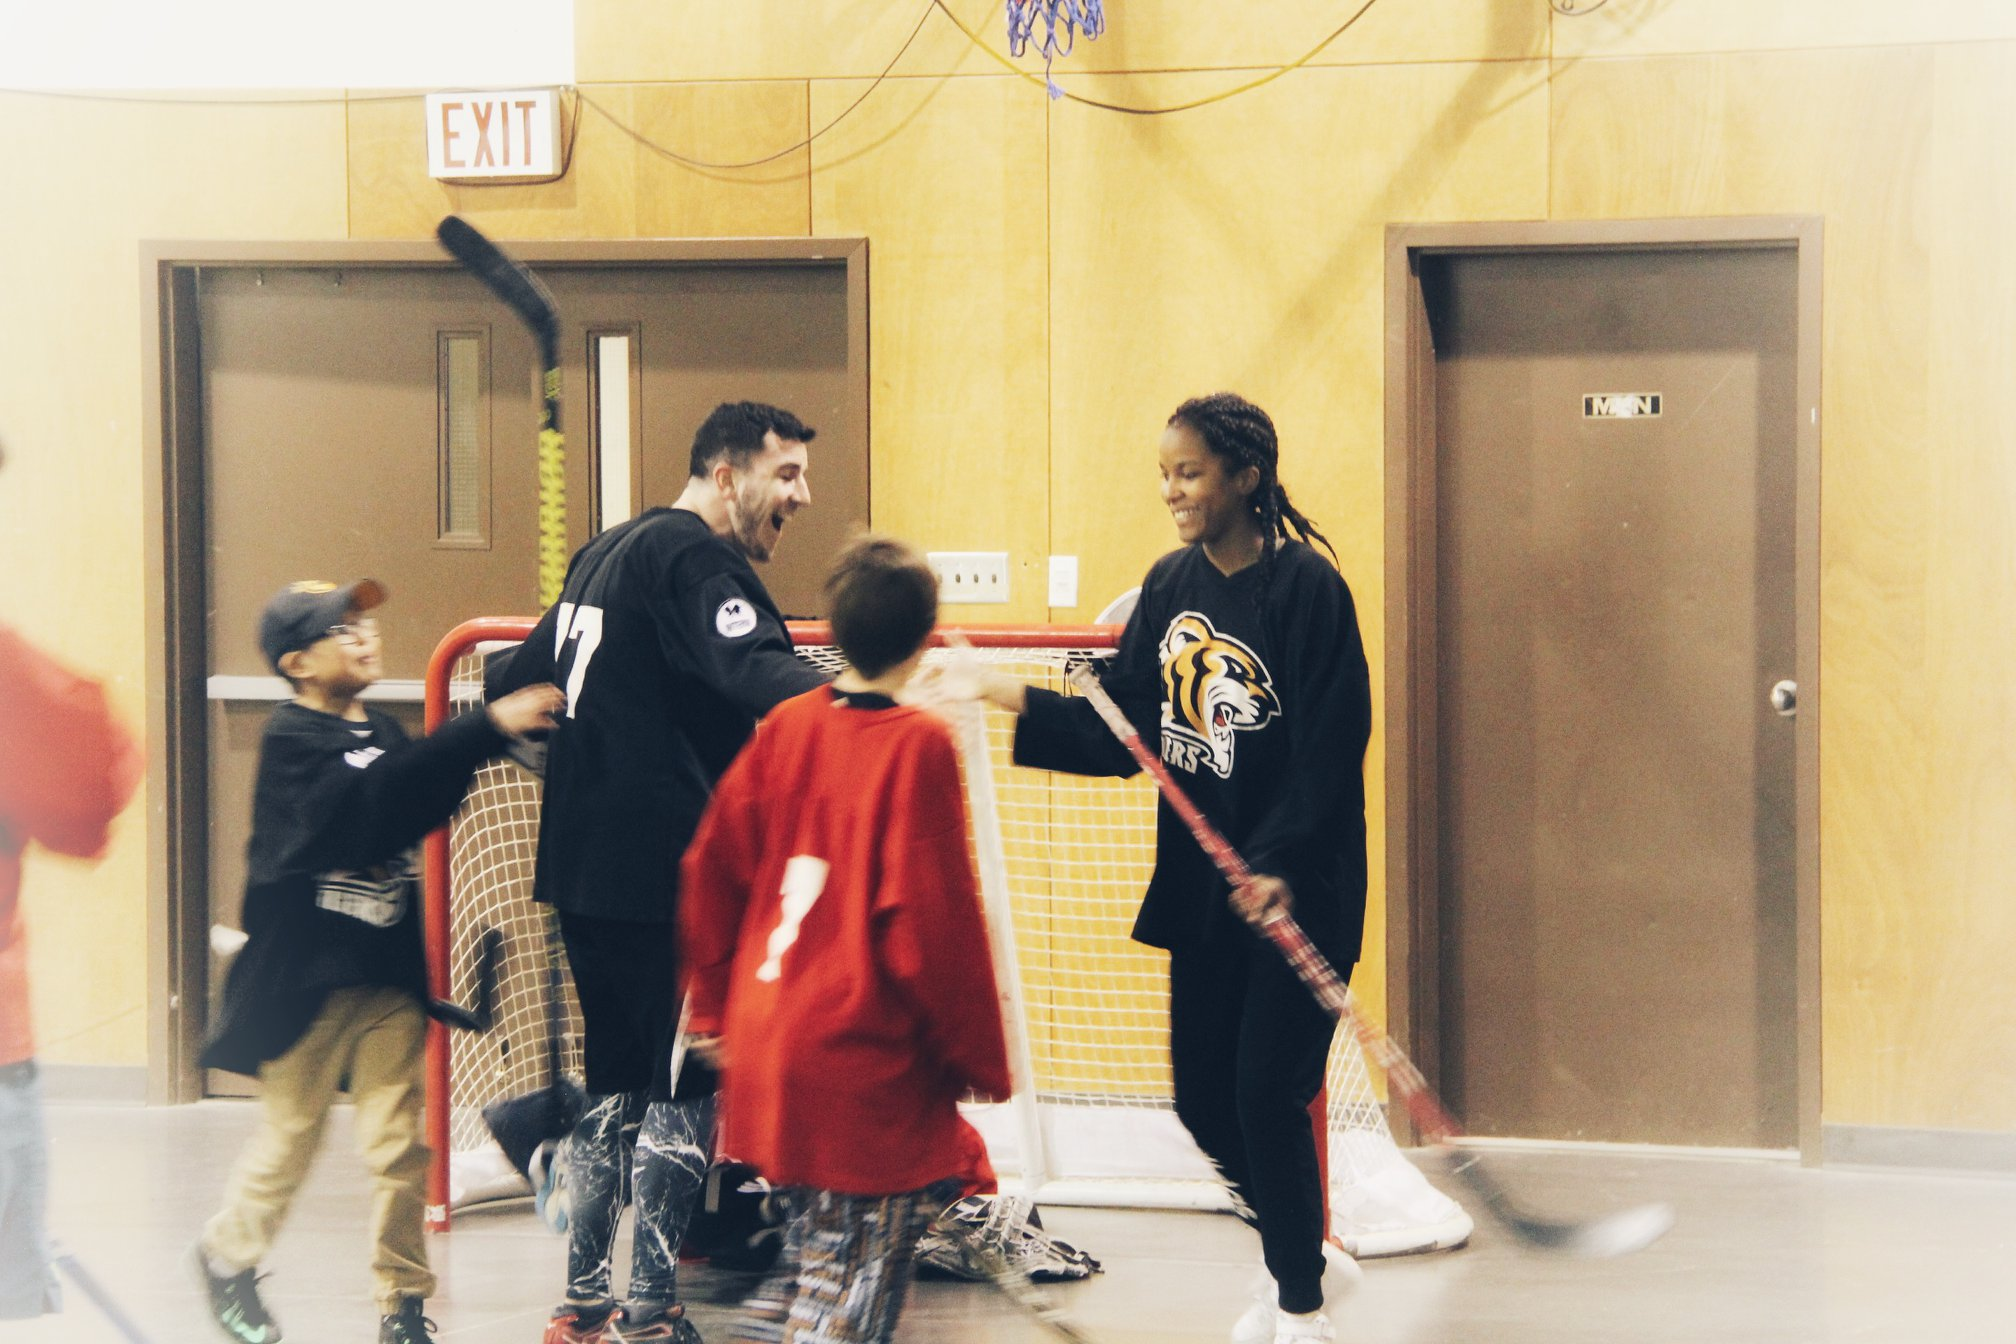 Celebrating and encouraging kids as they succeed (and score sick goals).